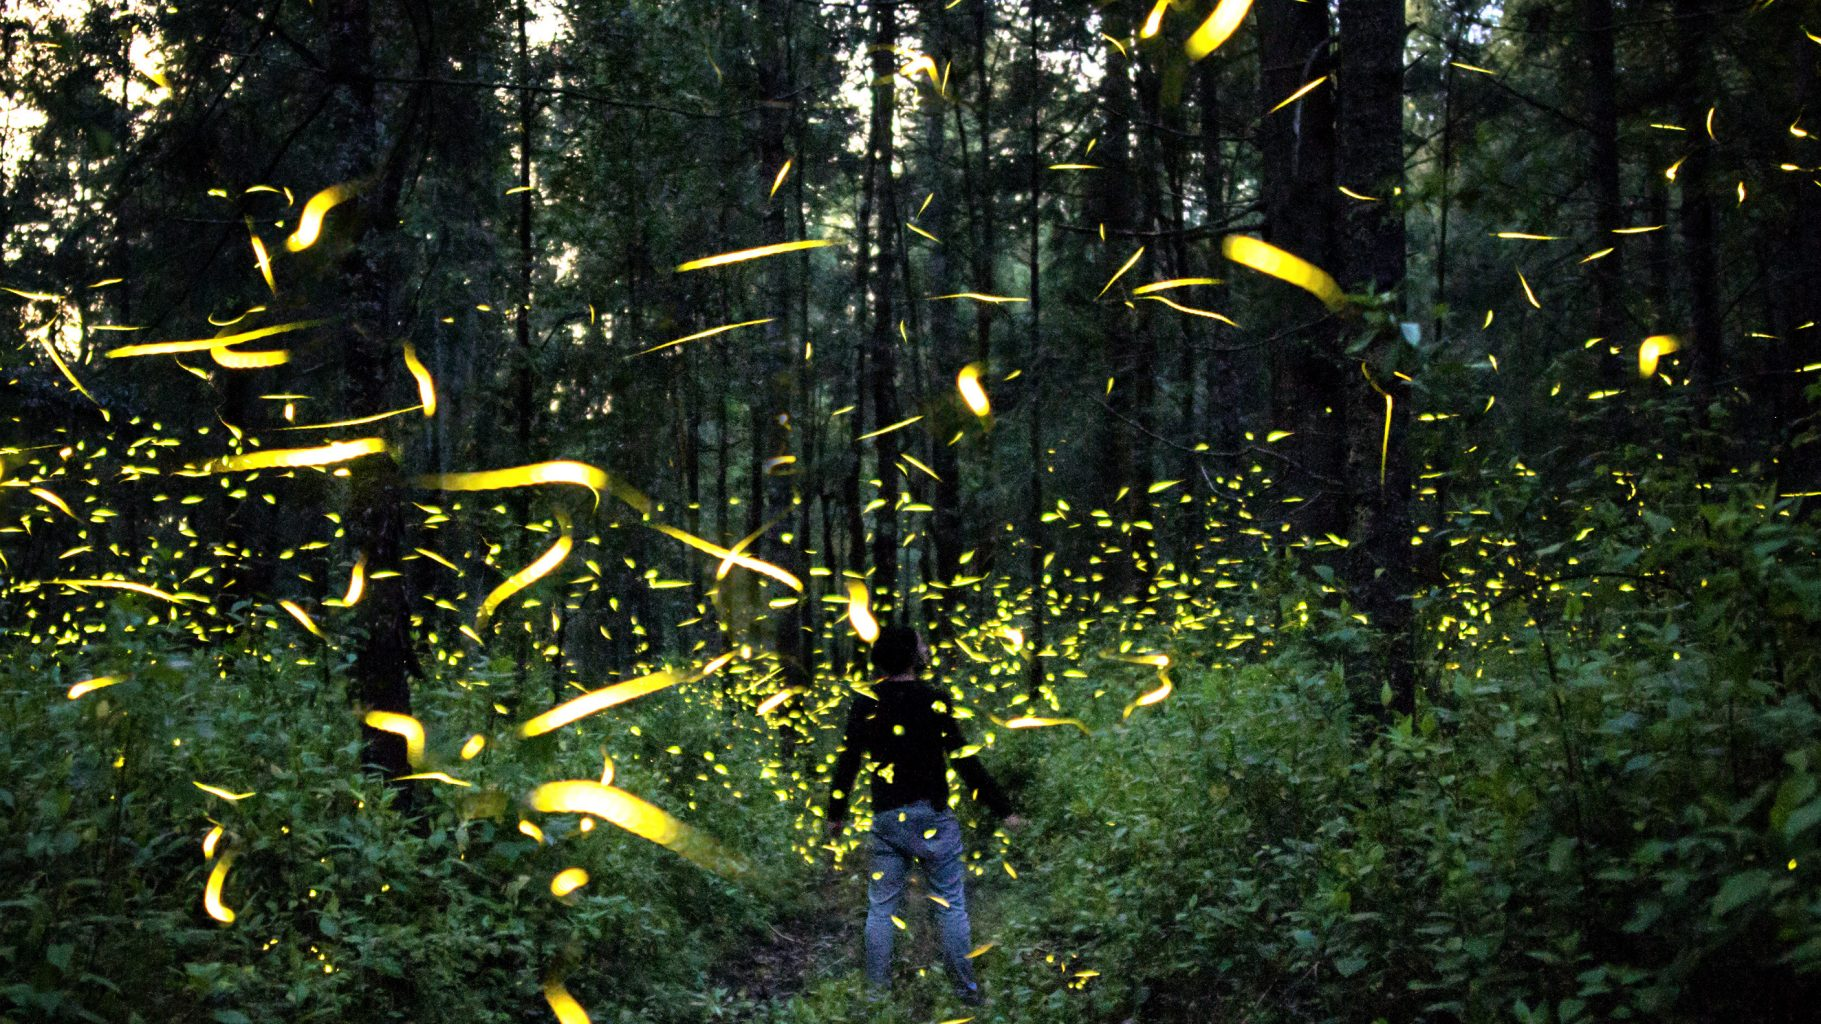 Image: People standing away from us on a forest trail in Mexico surrounded by the lights from fireflies.